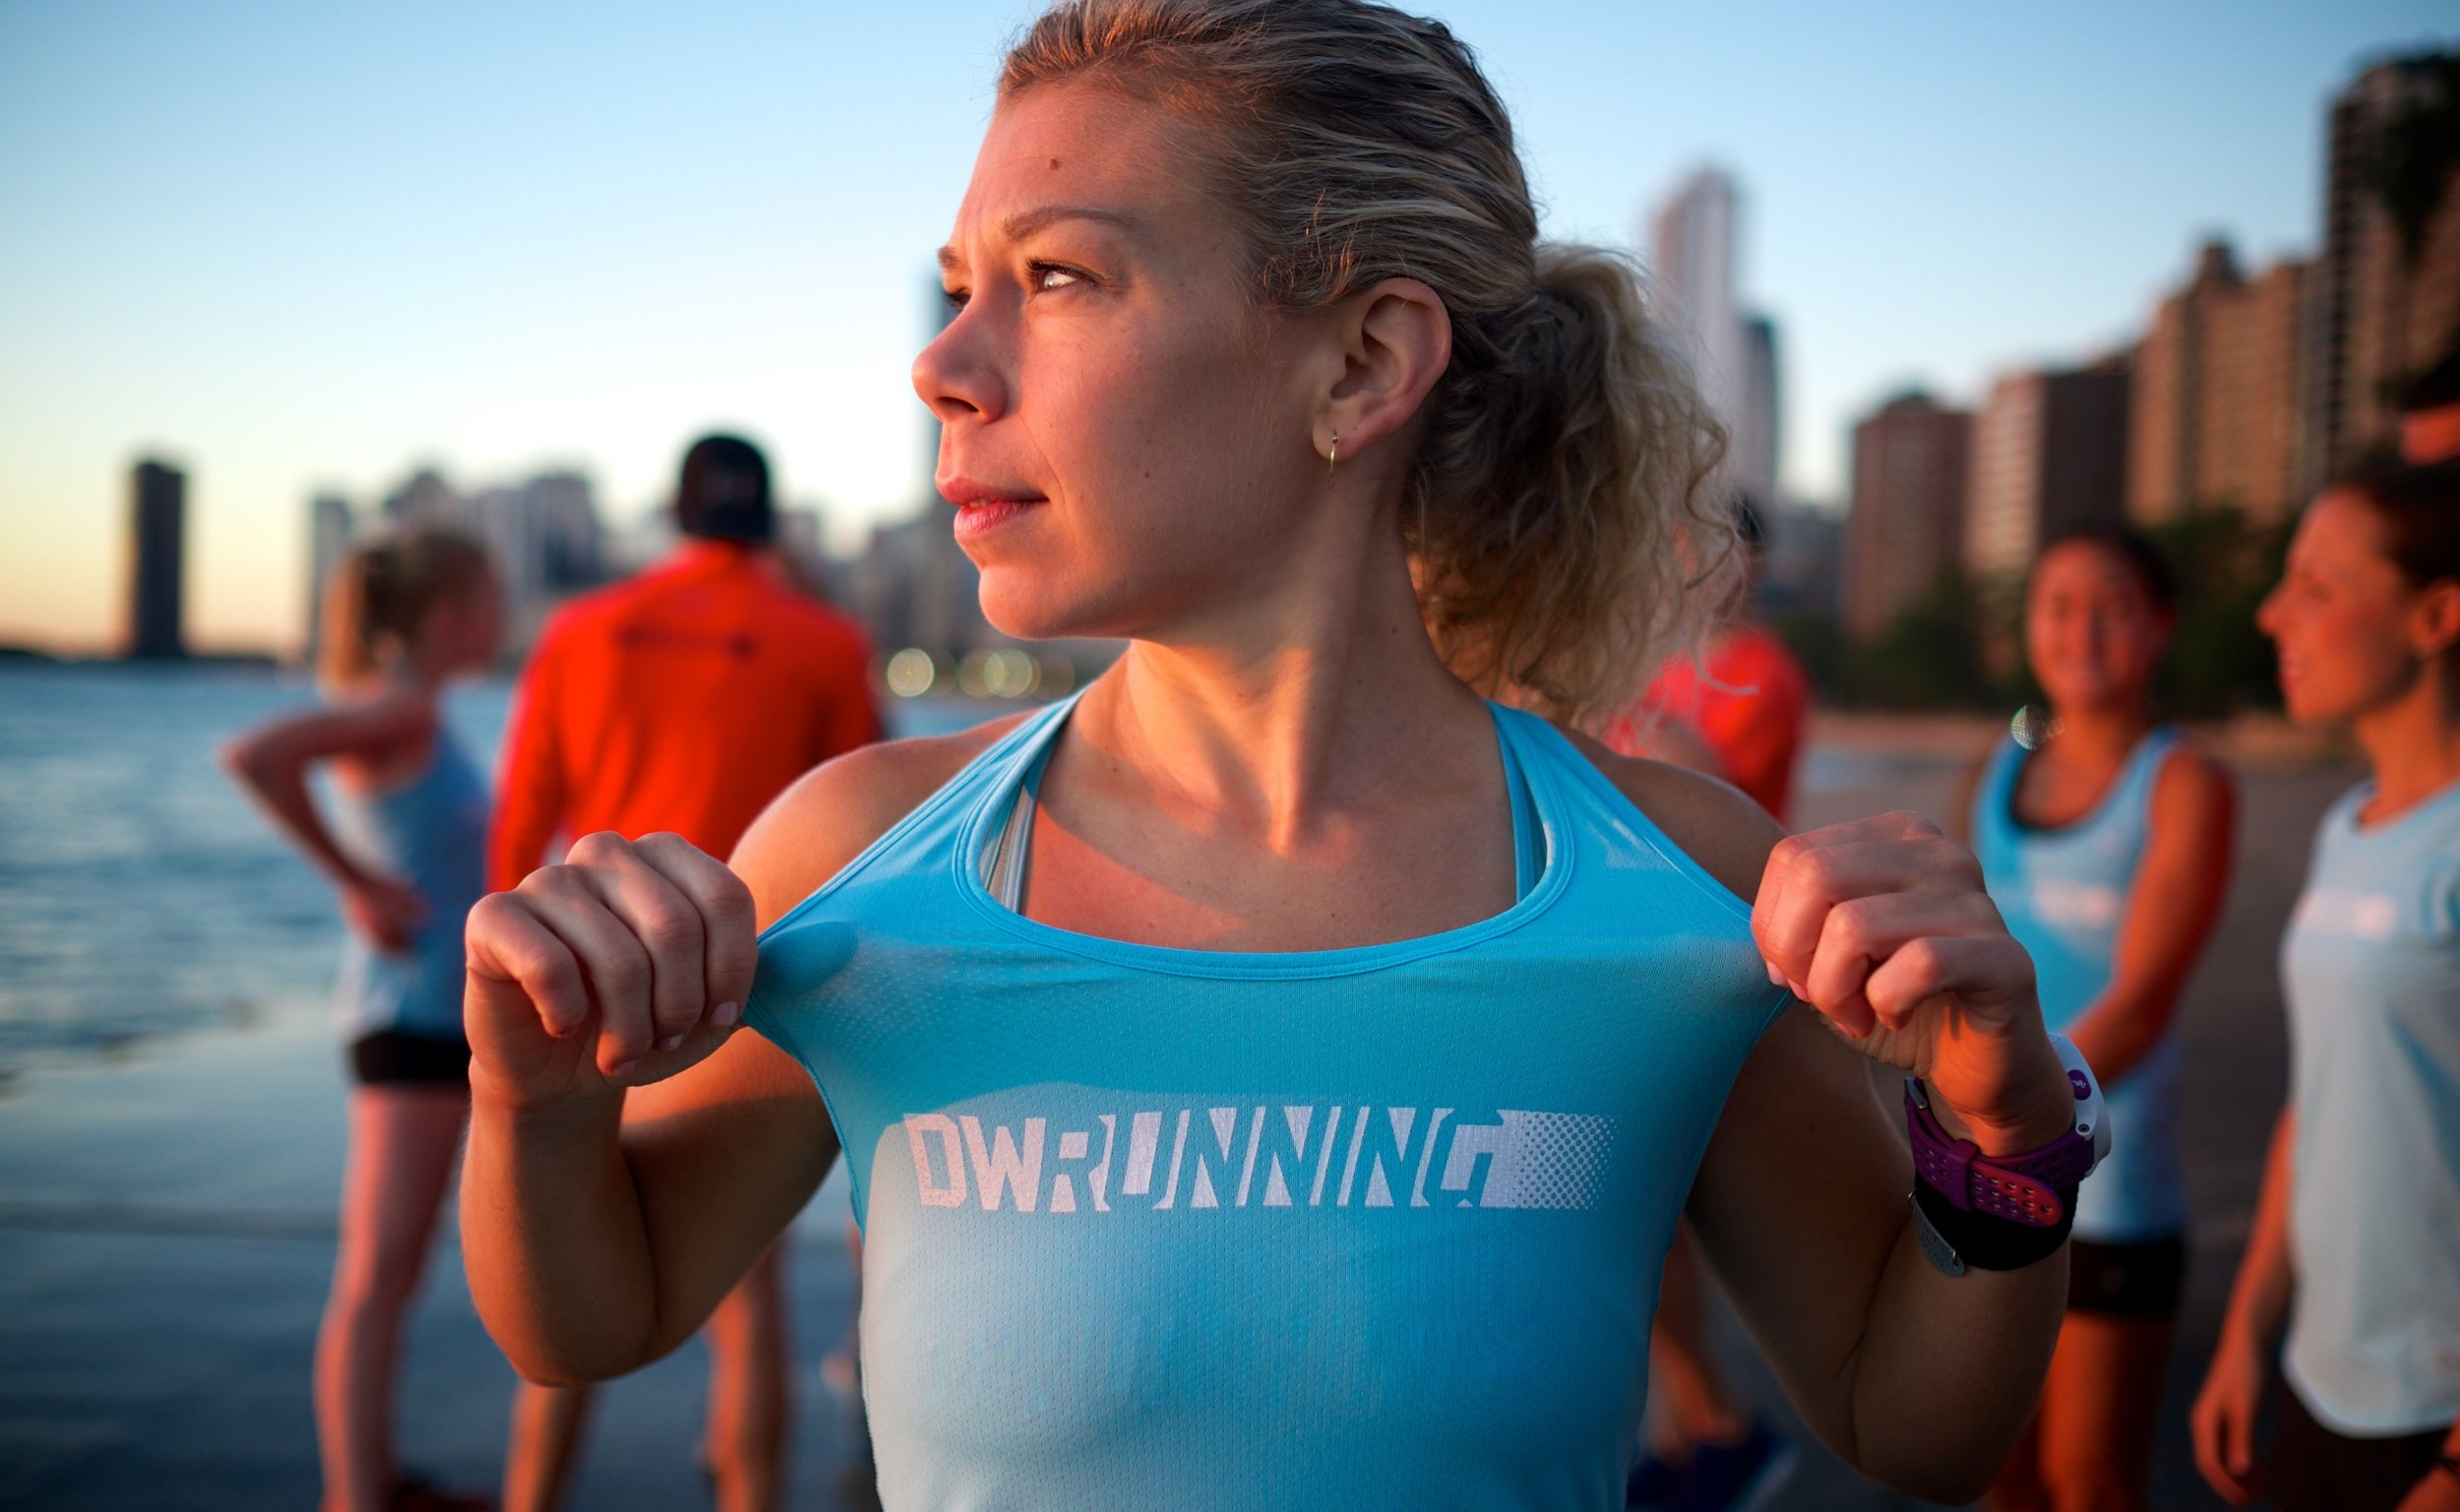 Allison Koch - DWRunning